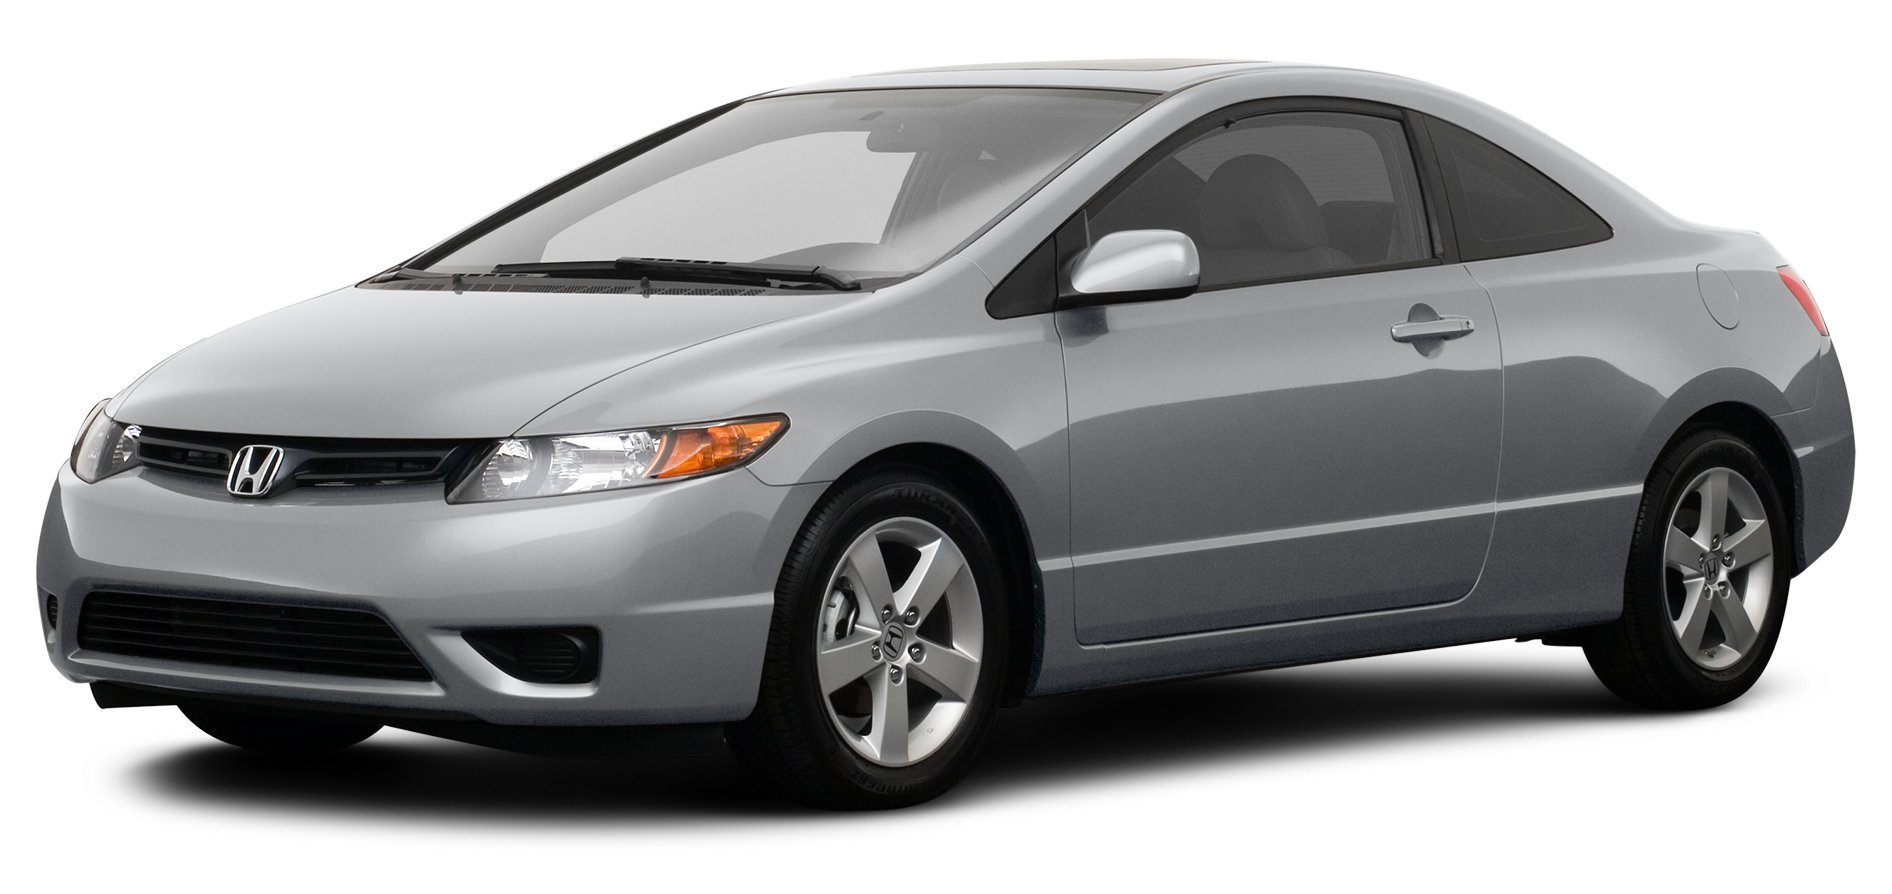 2008 honda accord reviews images and specs vehicles. Black Bedroom Furniture Sets. Home Design Ideas